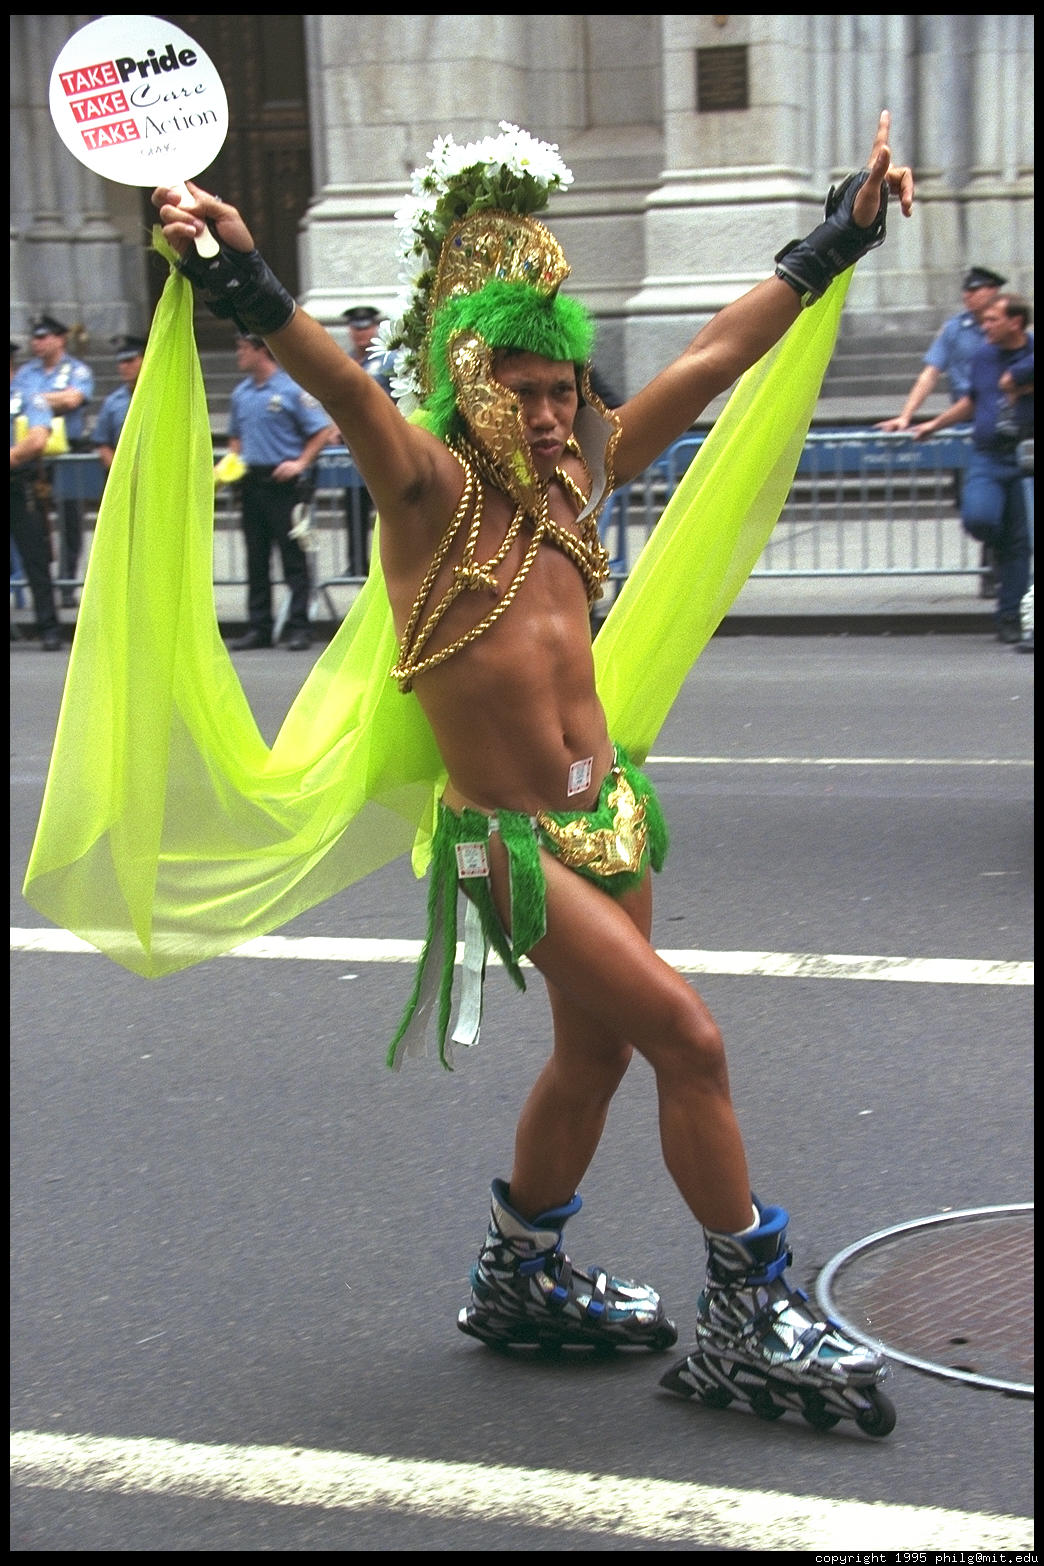 http://philip.greenspun.com/images/pcd0155/gay-parade-20.4.jpg